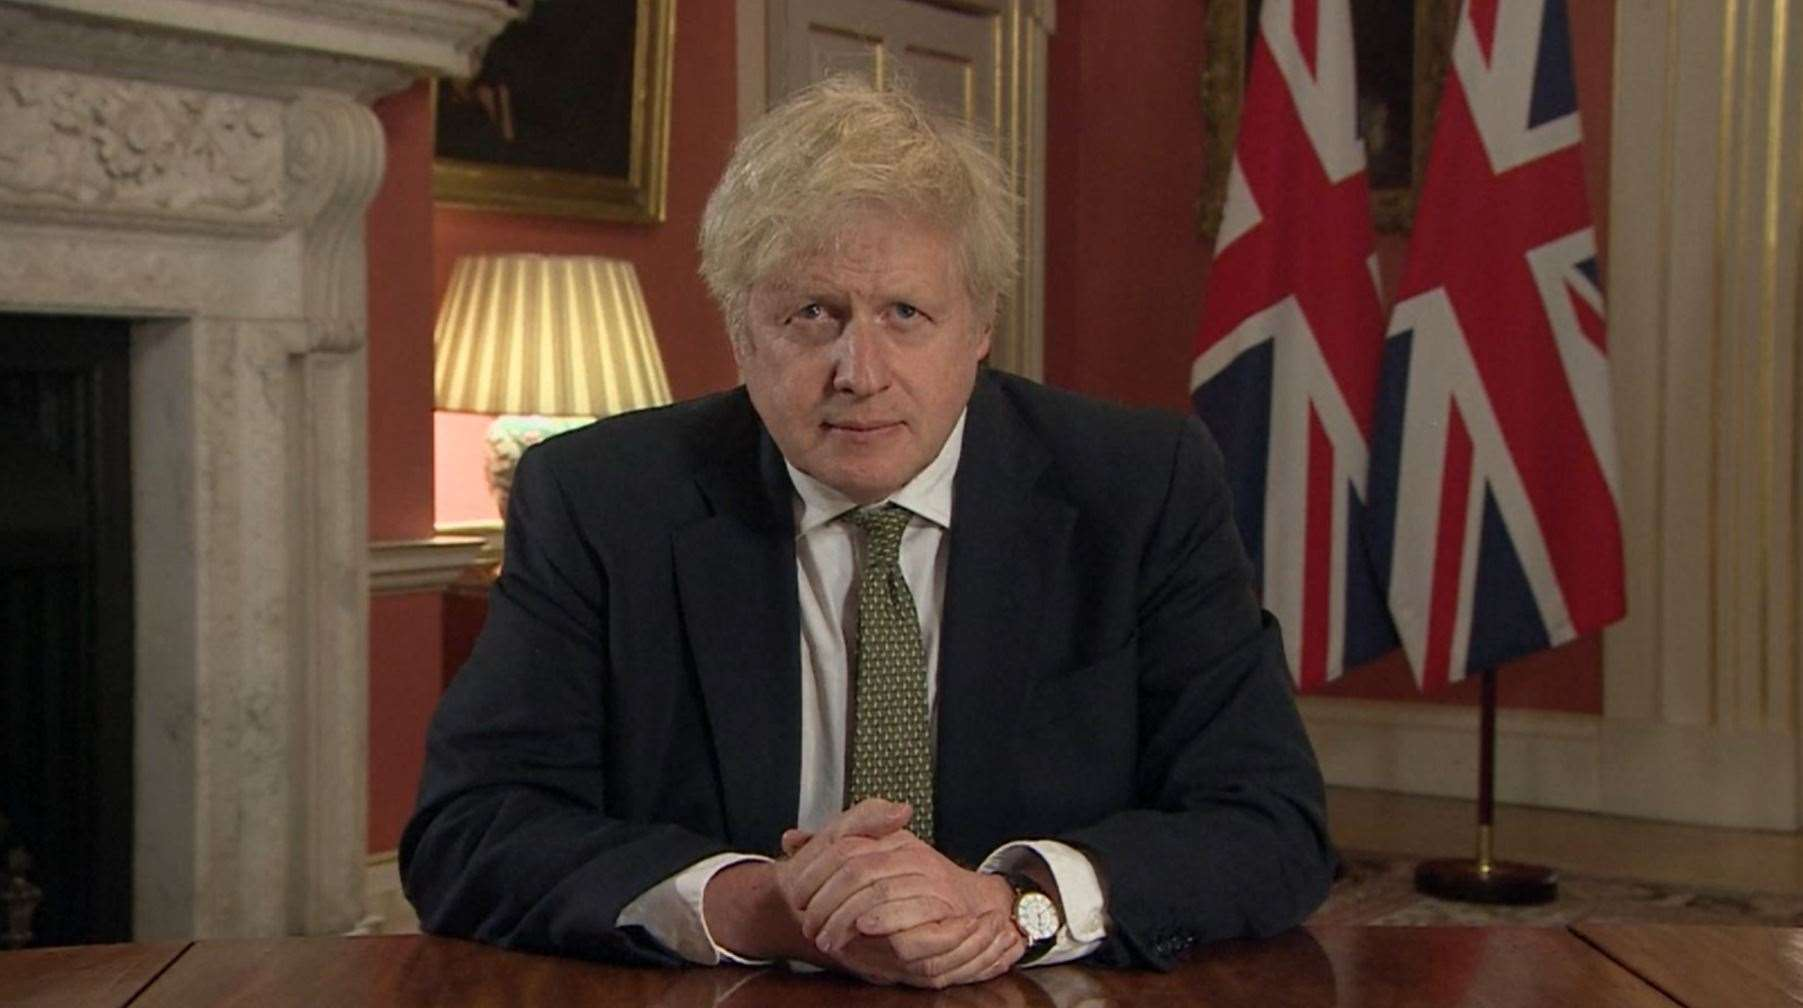 Prime Minister Boris Johnson making a televised address to the nation from 10 Downing Street (43818679)